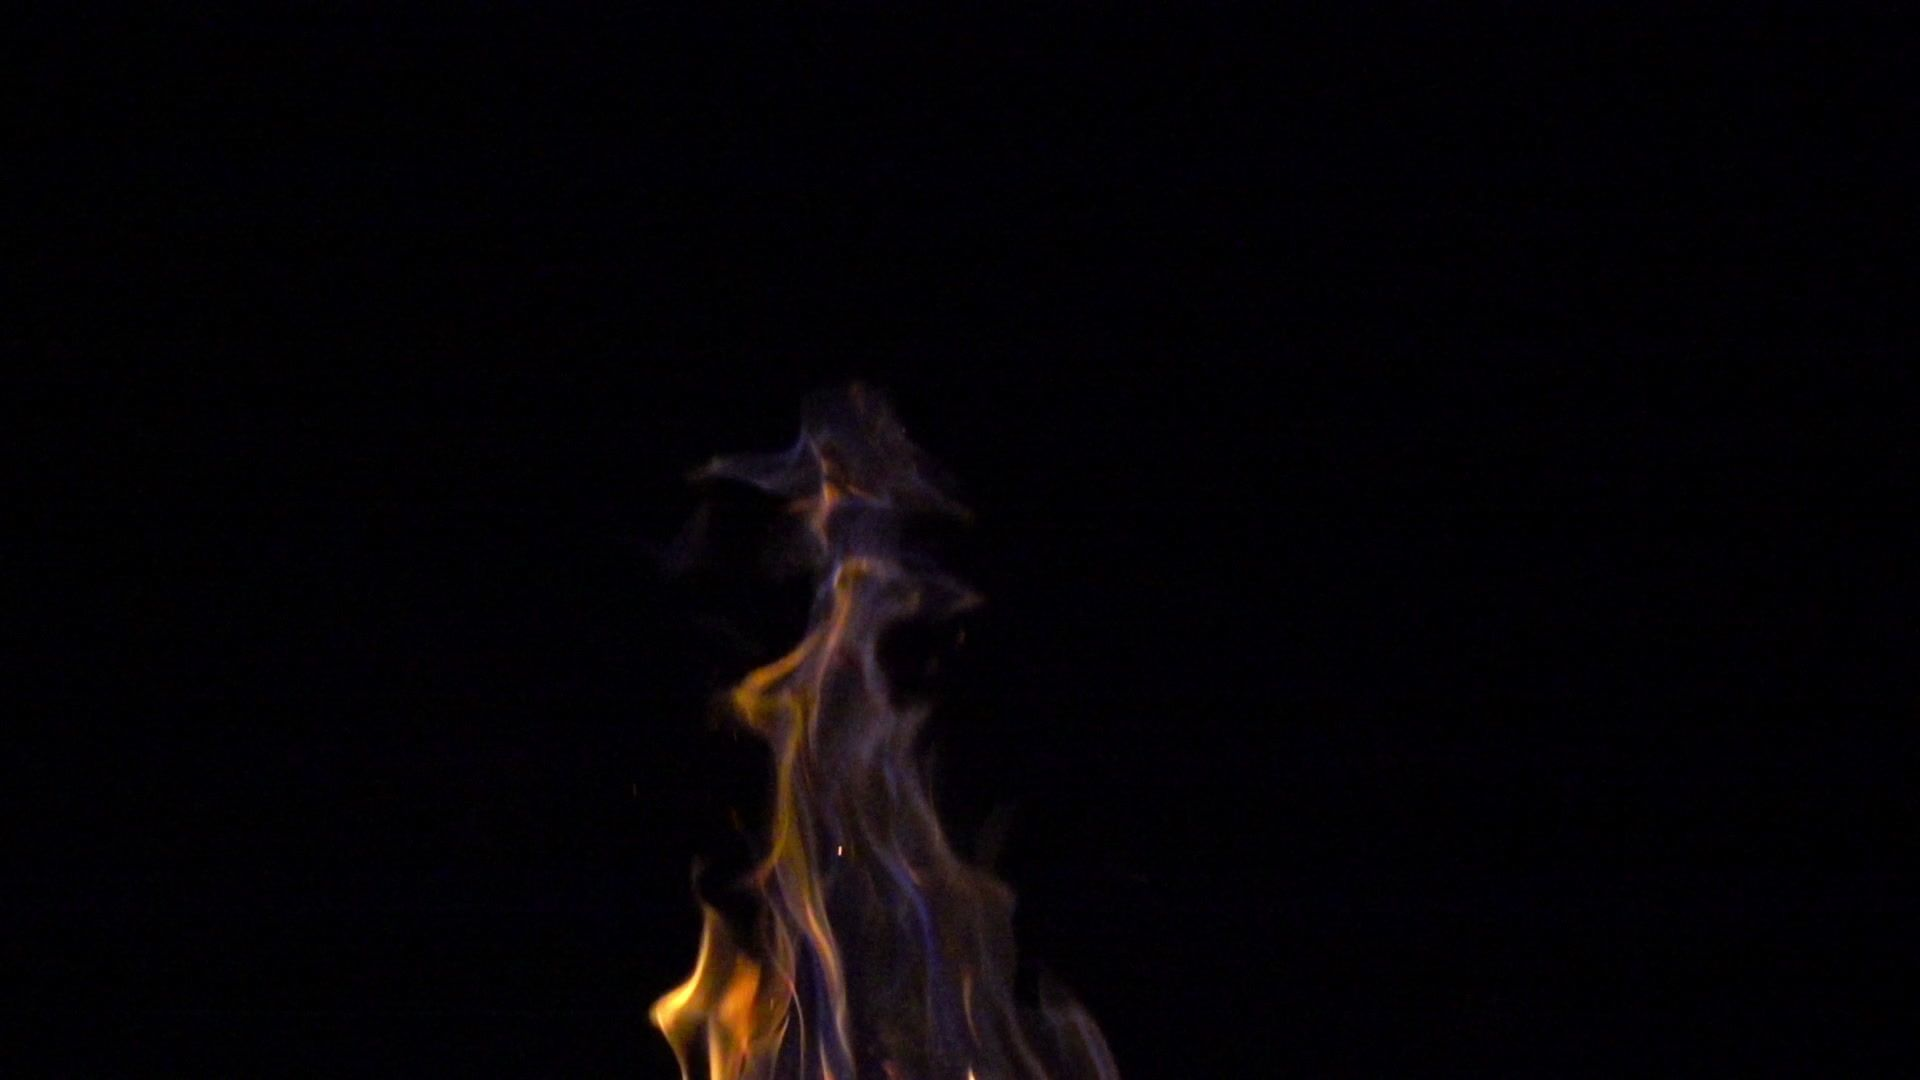 Top Of Burning Fire With Blue Smoke On Black Background 8x 240 Fps Slow Motion Stock Footage Blue Smoke Black To Black Backgrounds Sale Decoration Background